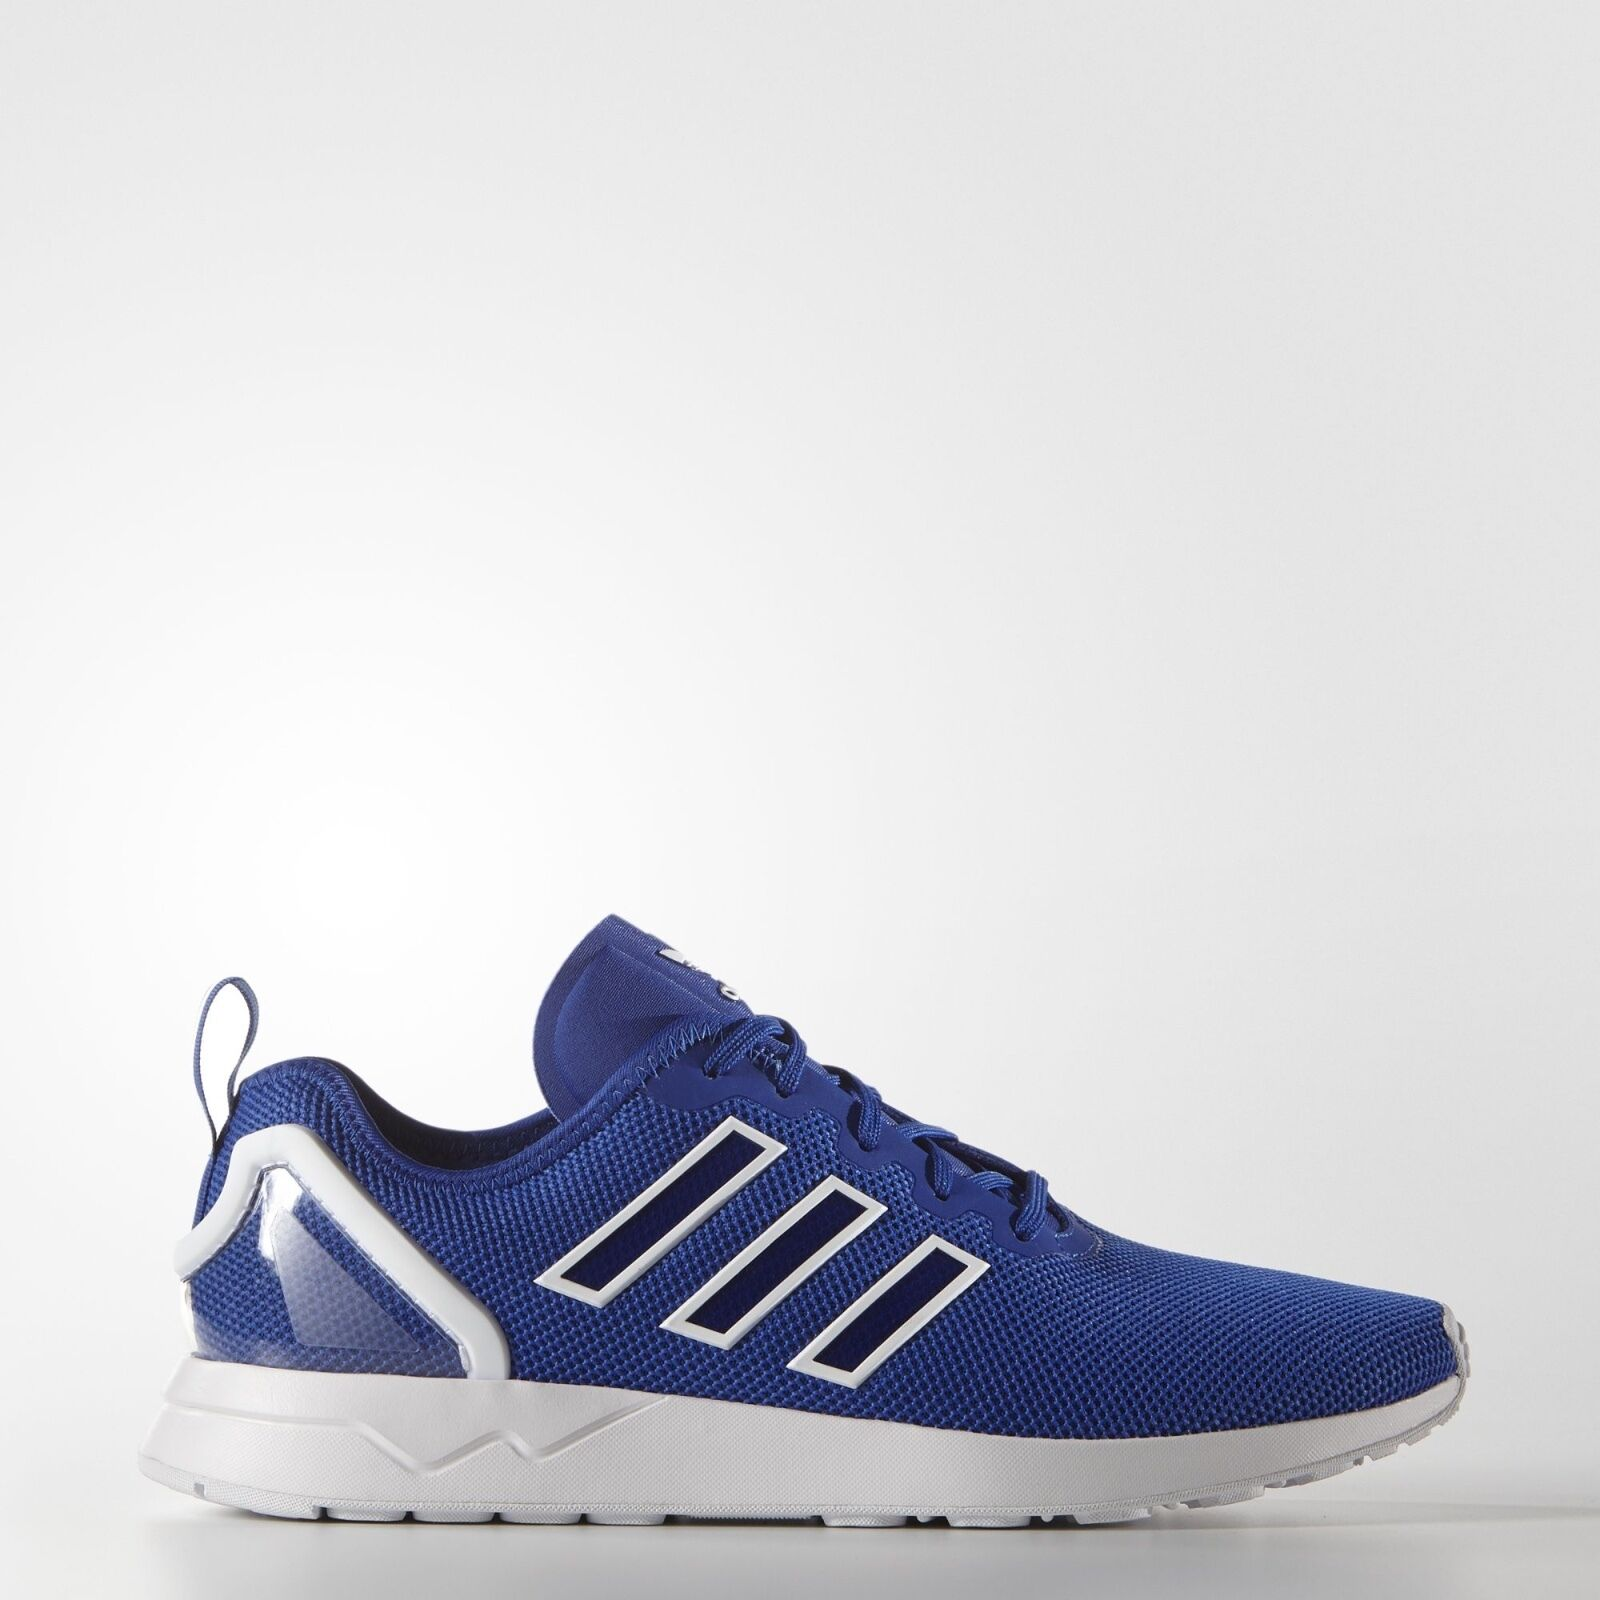 Adidas originals zx flux adv Euro 42 royal bluee B-GRADE TRAINER shoes bnib